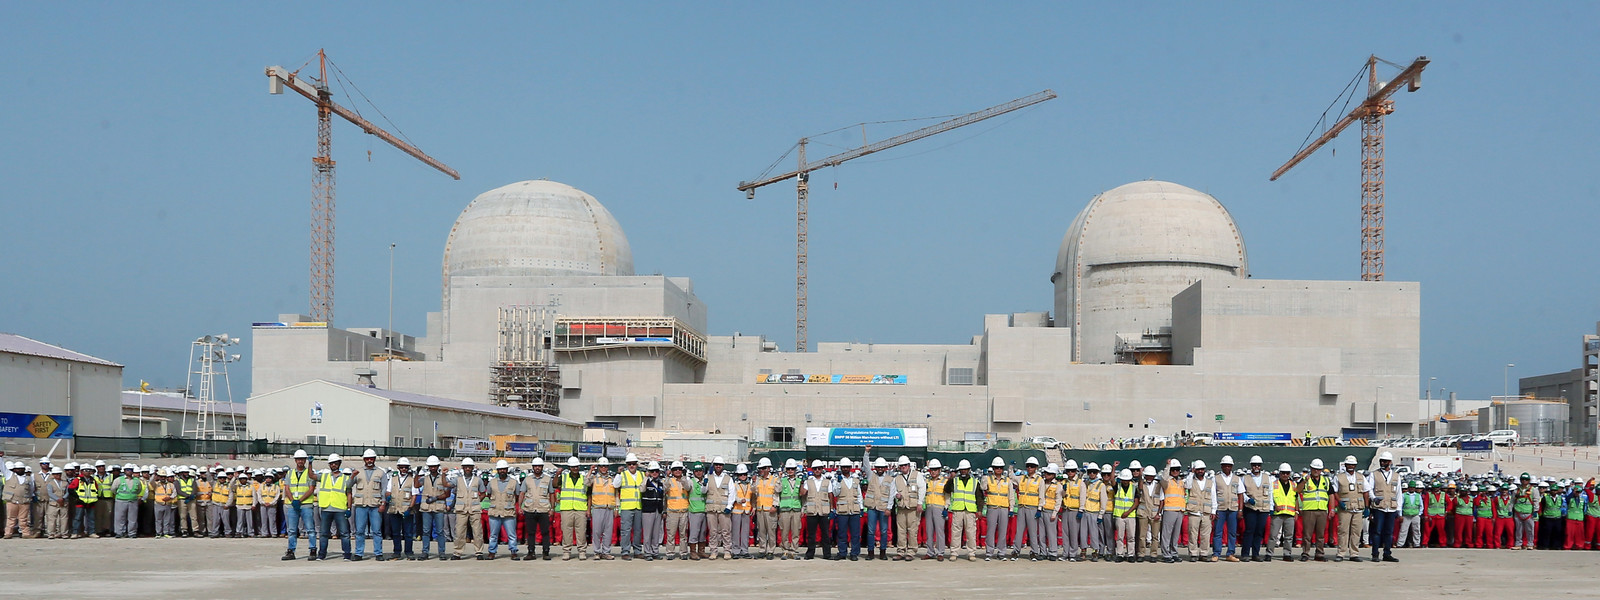 enec-celebrates-50-million-safe-work-hours-at-barakah-nuclear-energy-plant-5d3583282d62c.jpg (Gallery Image)